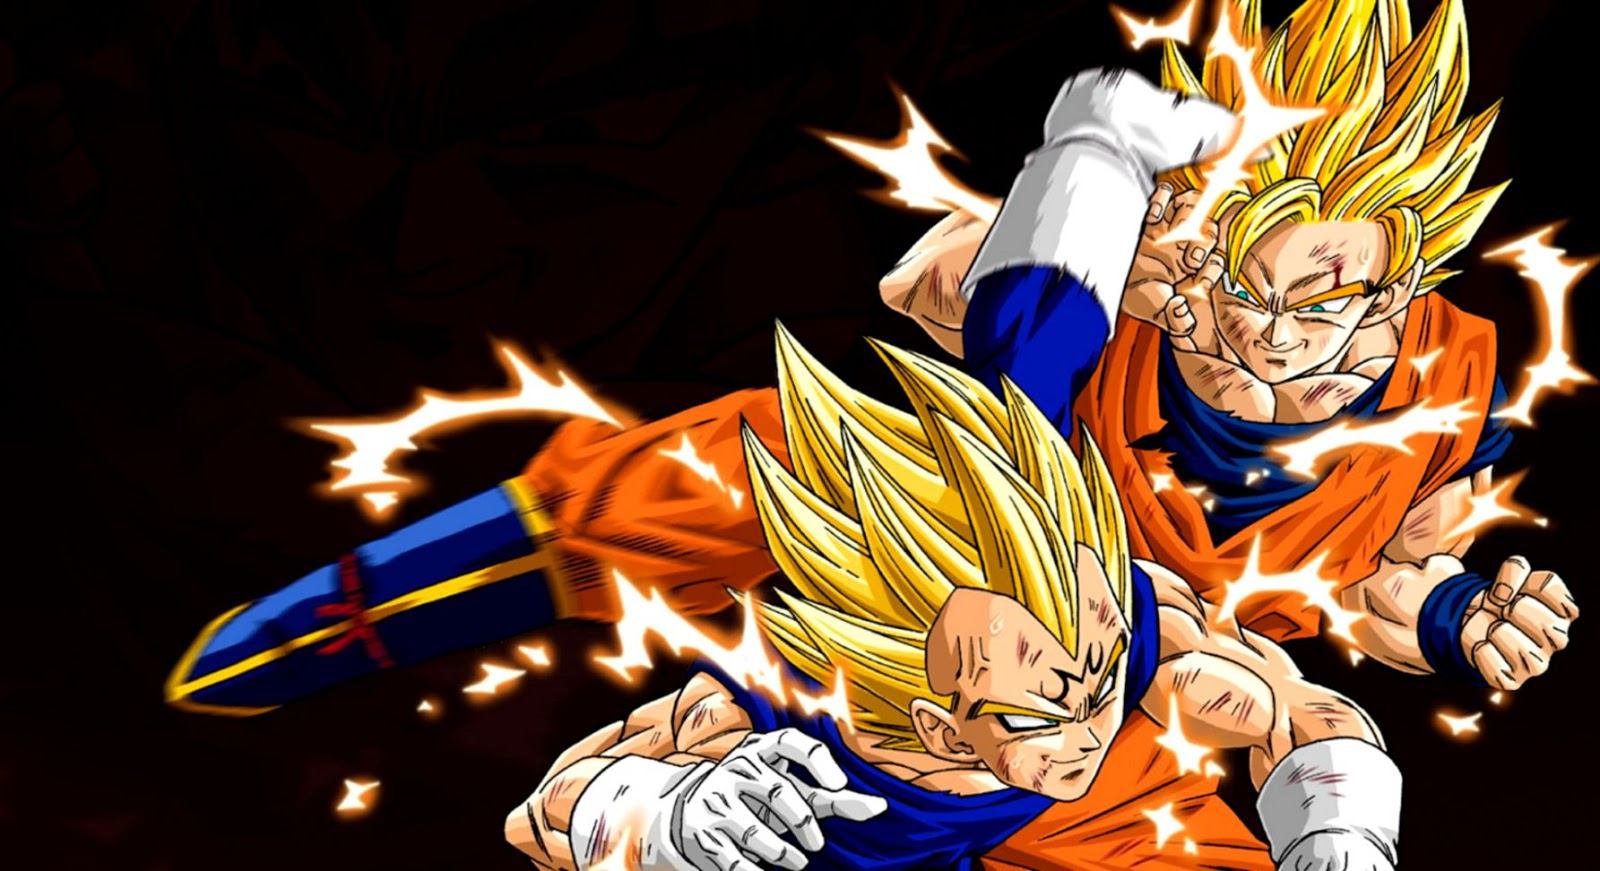 Goku And Vegeta Wallpaper 59 Pictures Dragon Ball Z Hd 82192 Hd Wallpaper Backgrounds Download